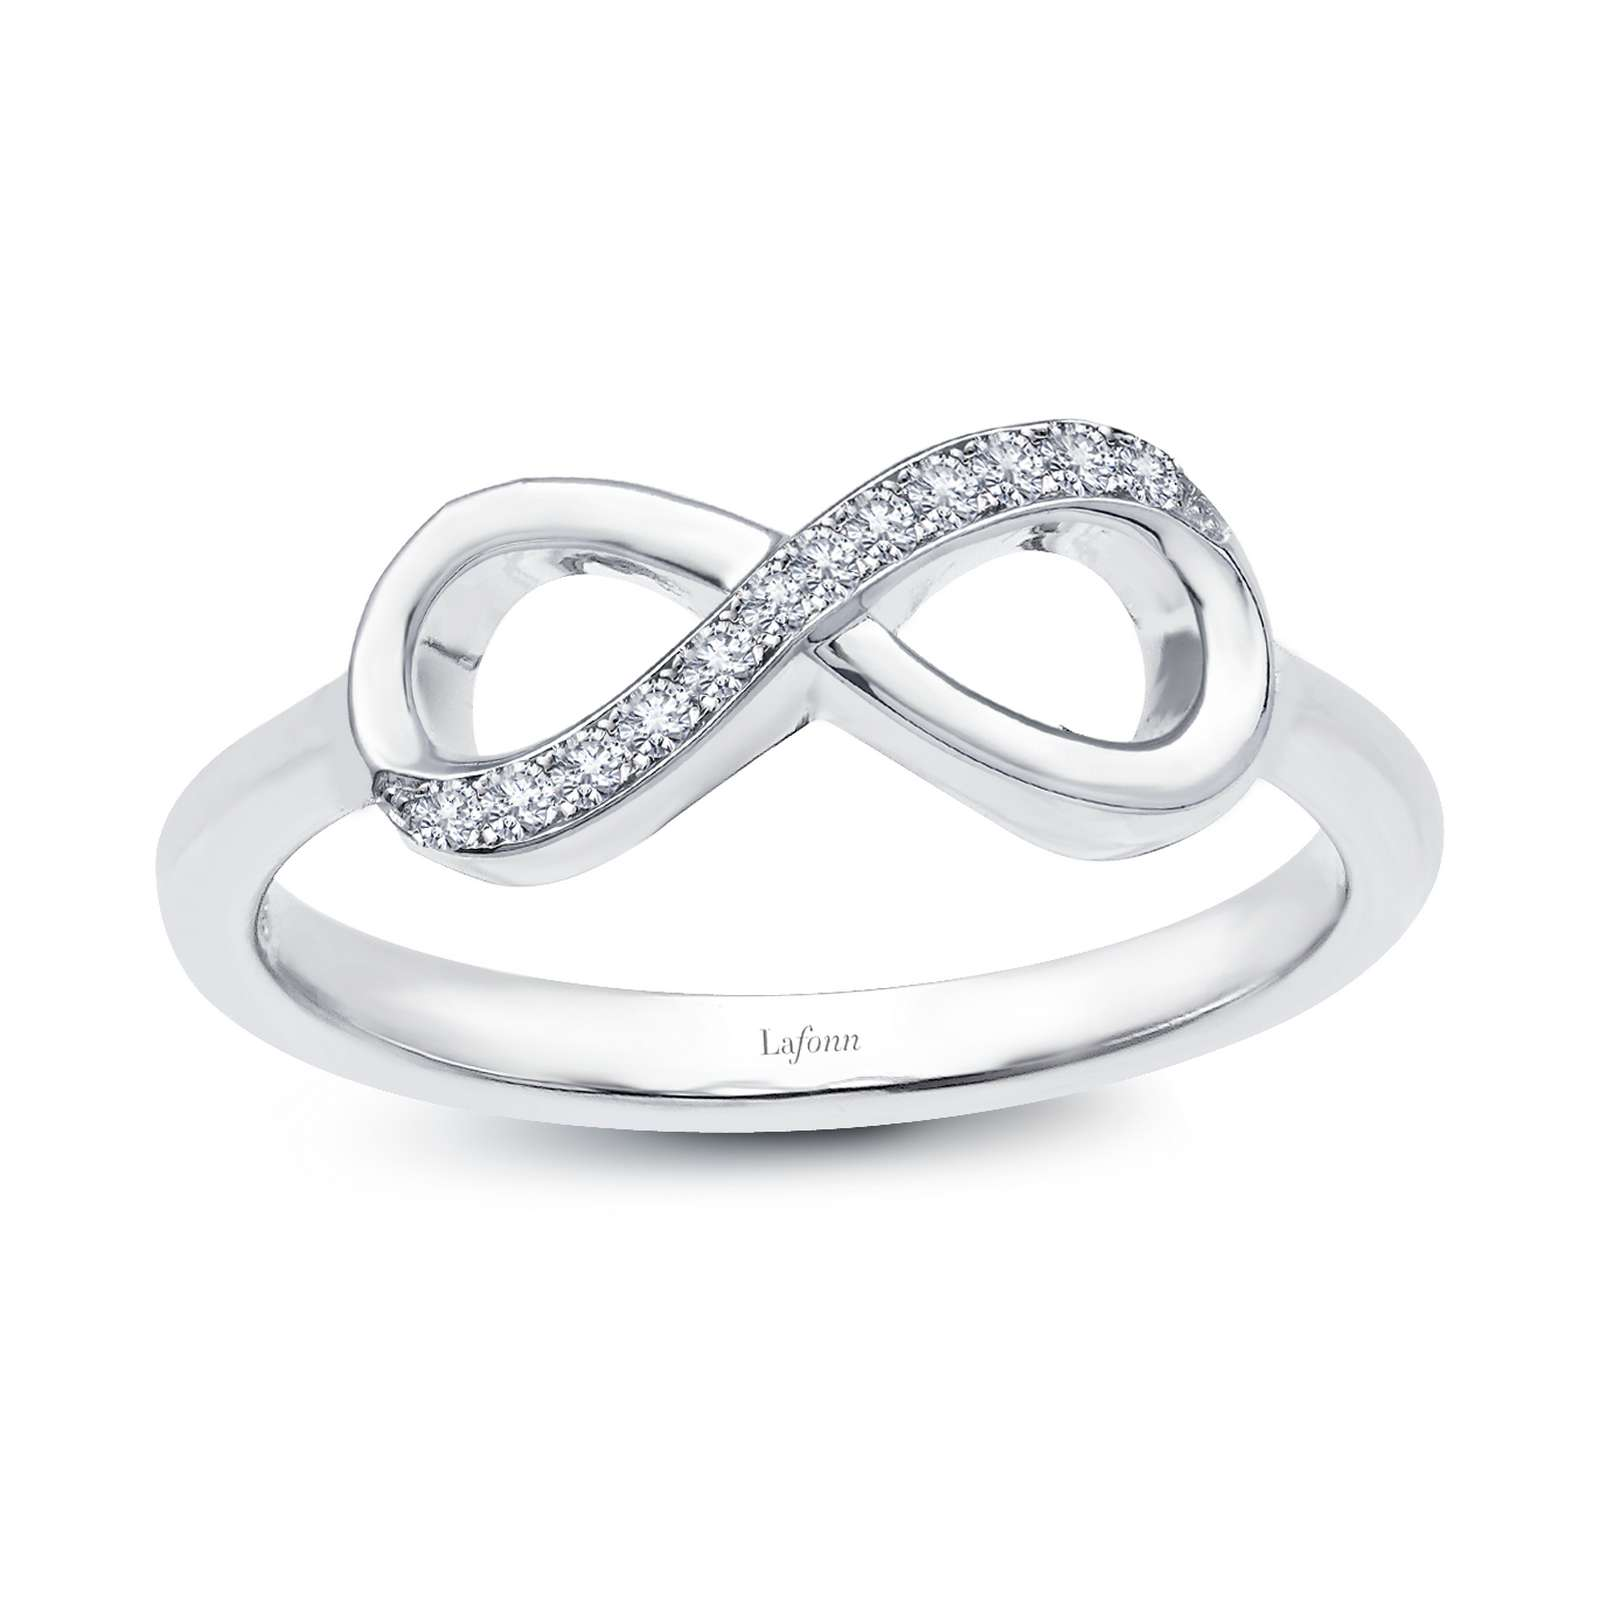 Classic Simulated Diamond Platinum Bonded Ring by Lafonn